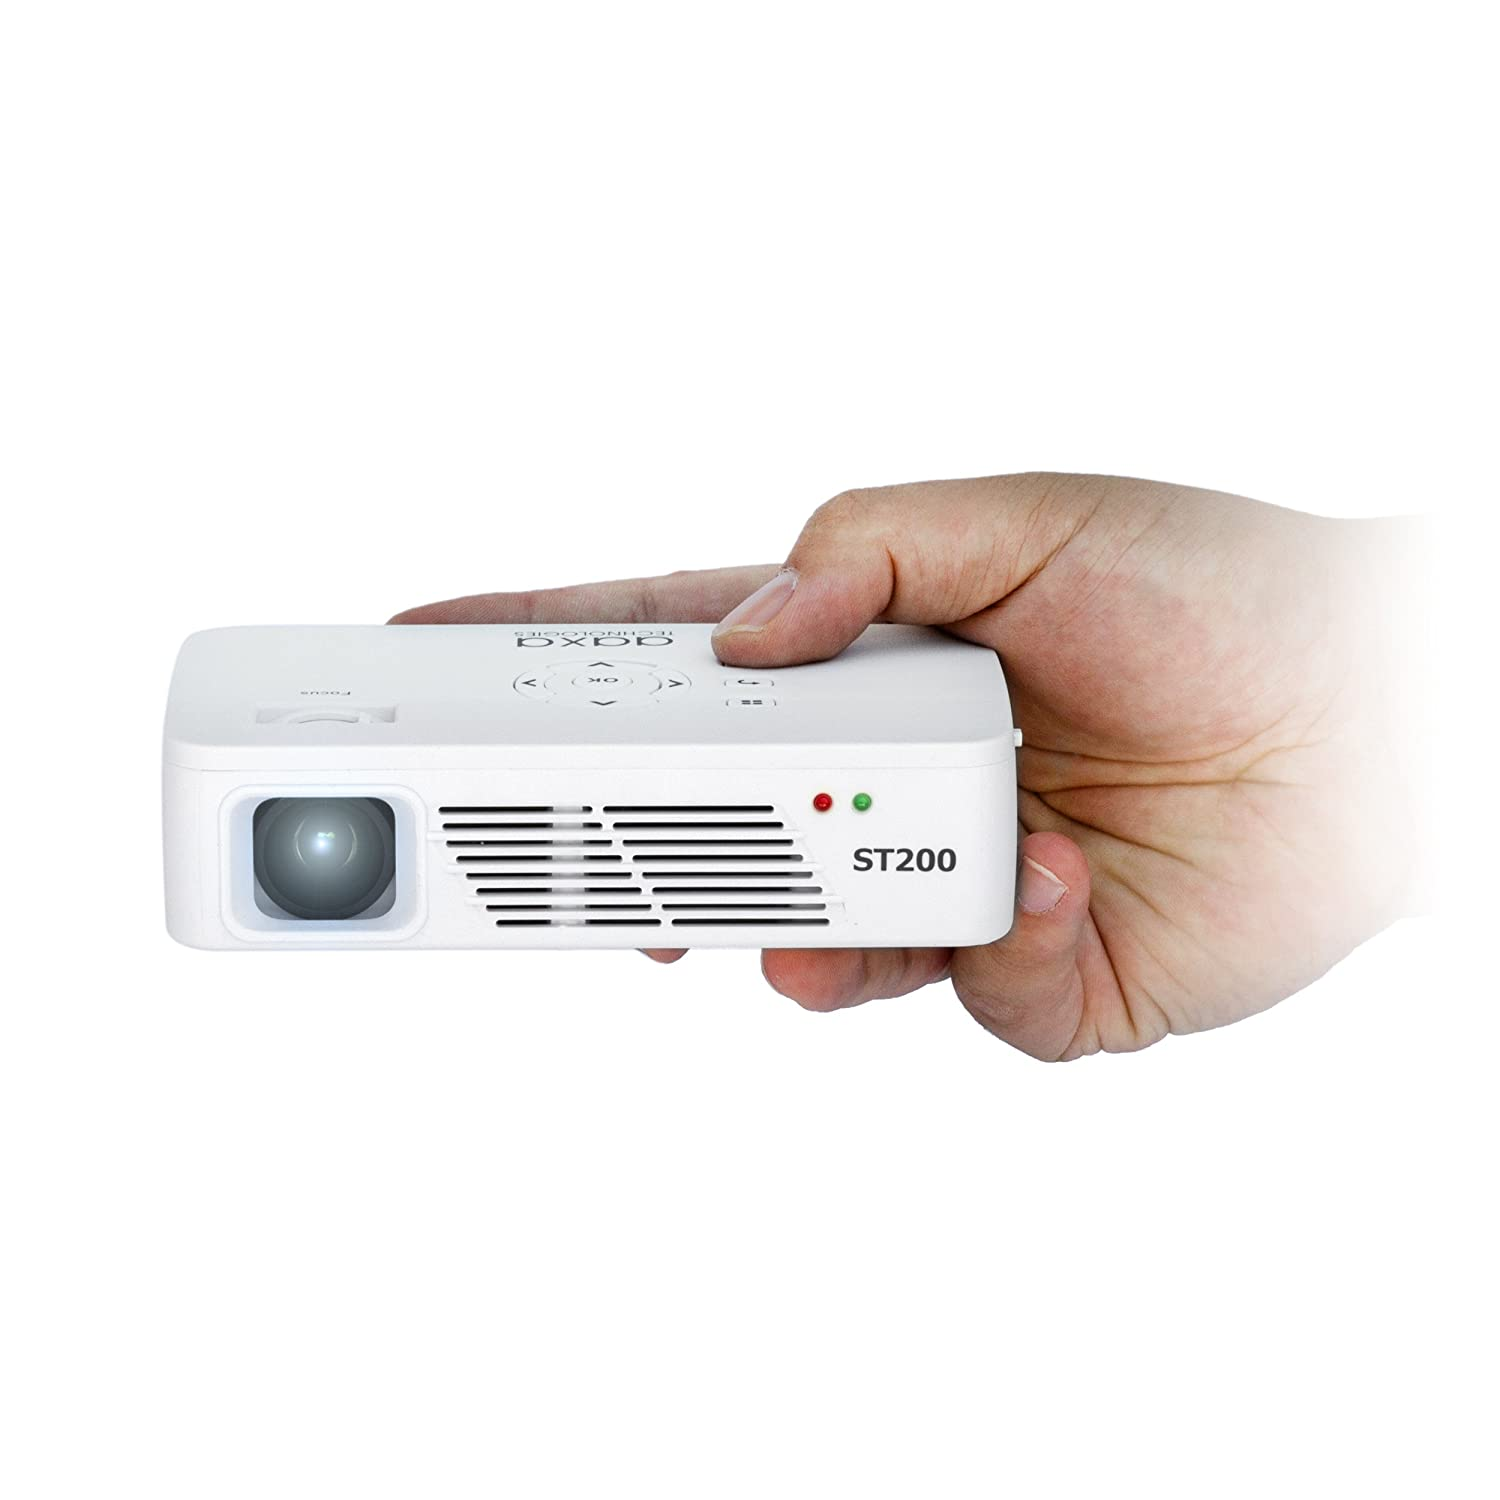 AAXA ST200 HD 1280 x 720 Resolution LED Pico Projector, 150 Lumens, Short Throw, 60 Minute Battery, 15,000 Hour LEDs - KP-350-01